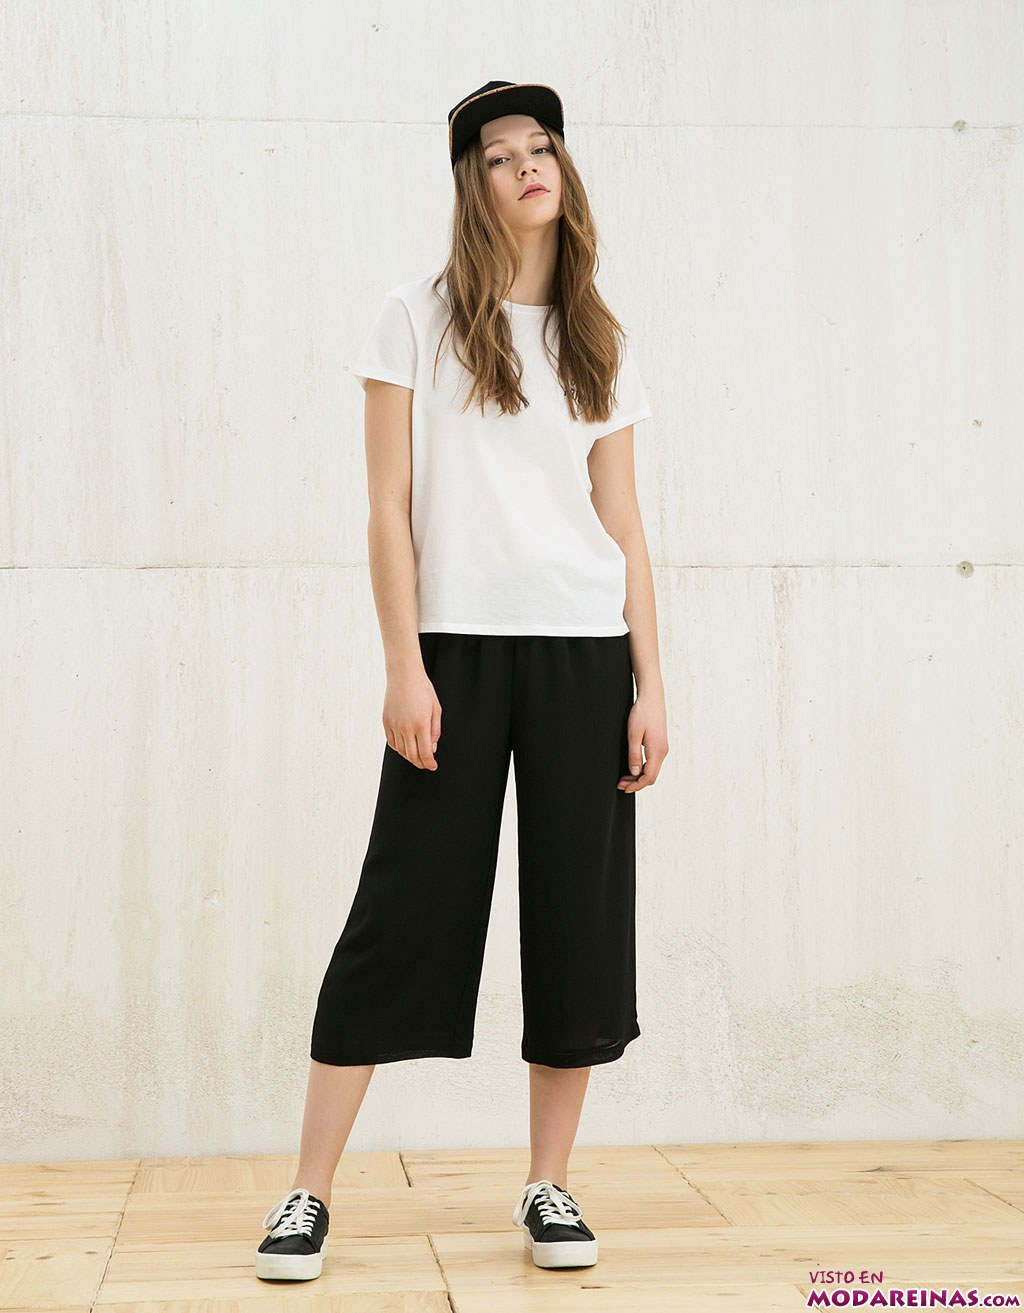 culotte en color negro